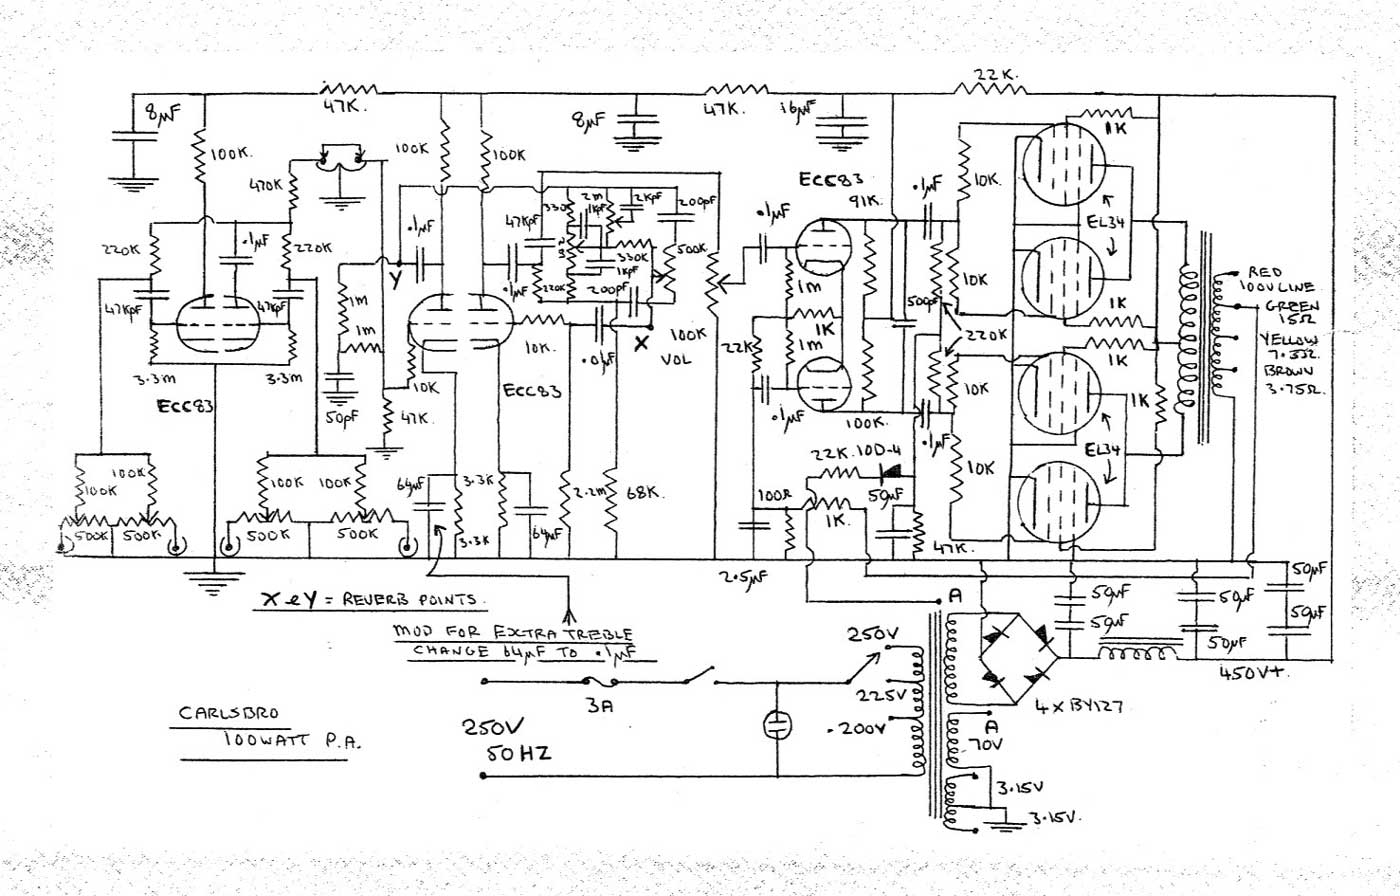 Electrical Diagram Msd